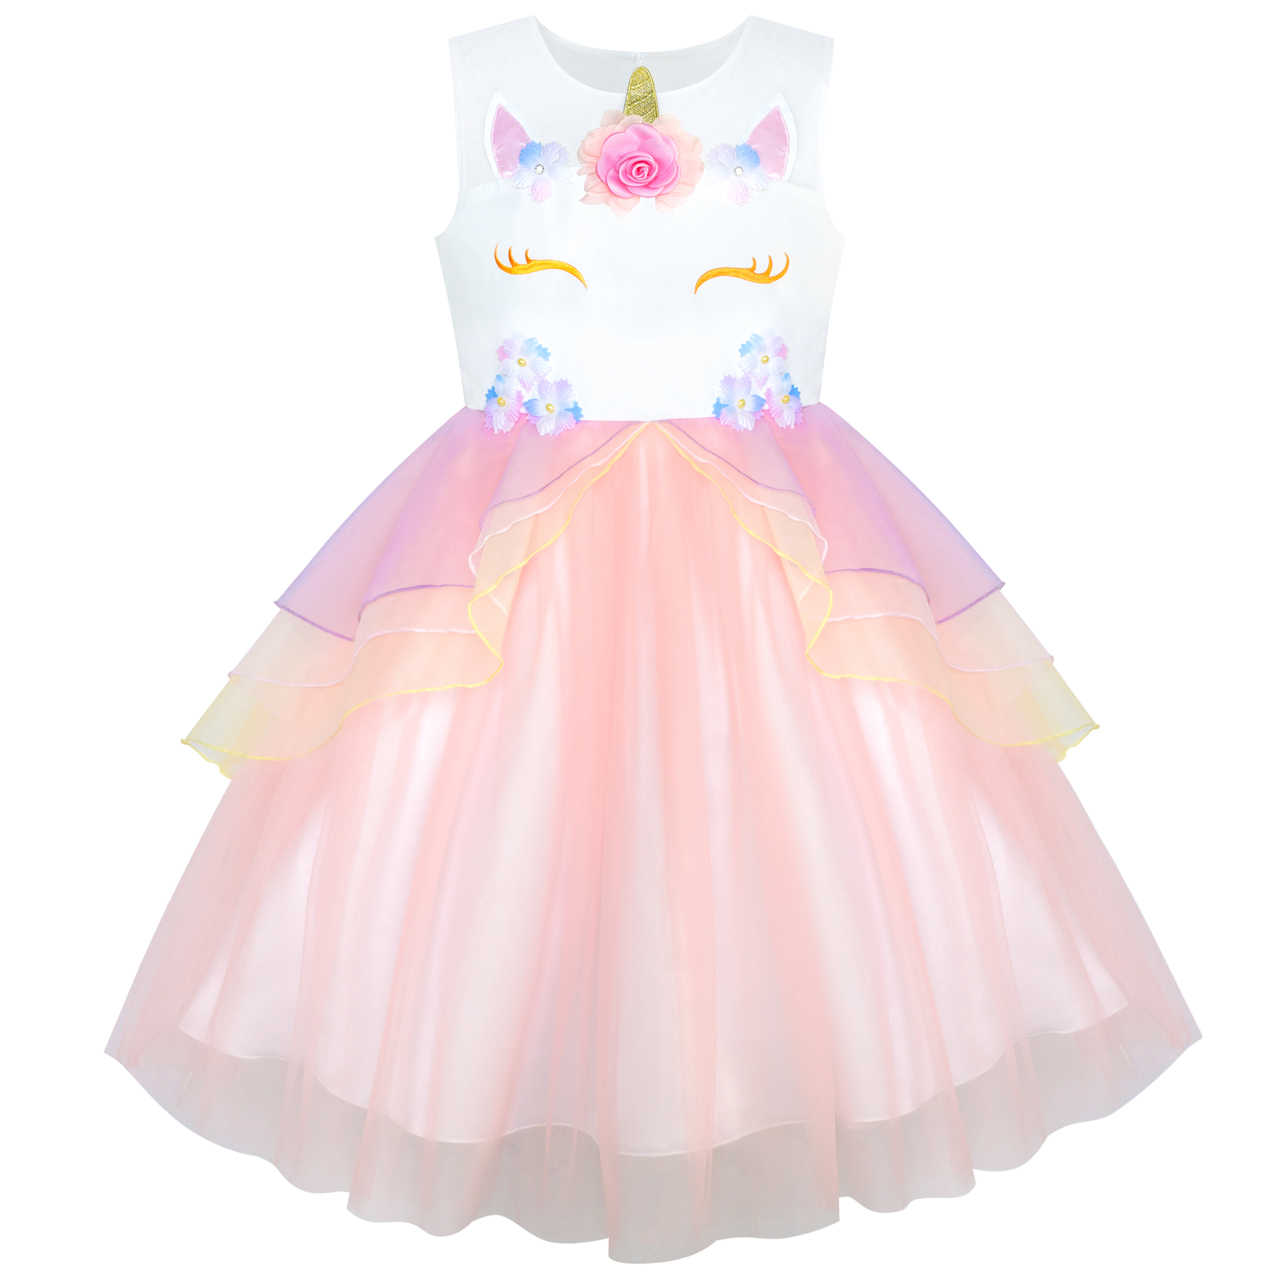 Girls Dress Blush Pink Unicorn Costume Cosplay Princess Halloween Party  2019 Summer Wedding Dresses Girl Clothes 51279ec4a1ad